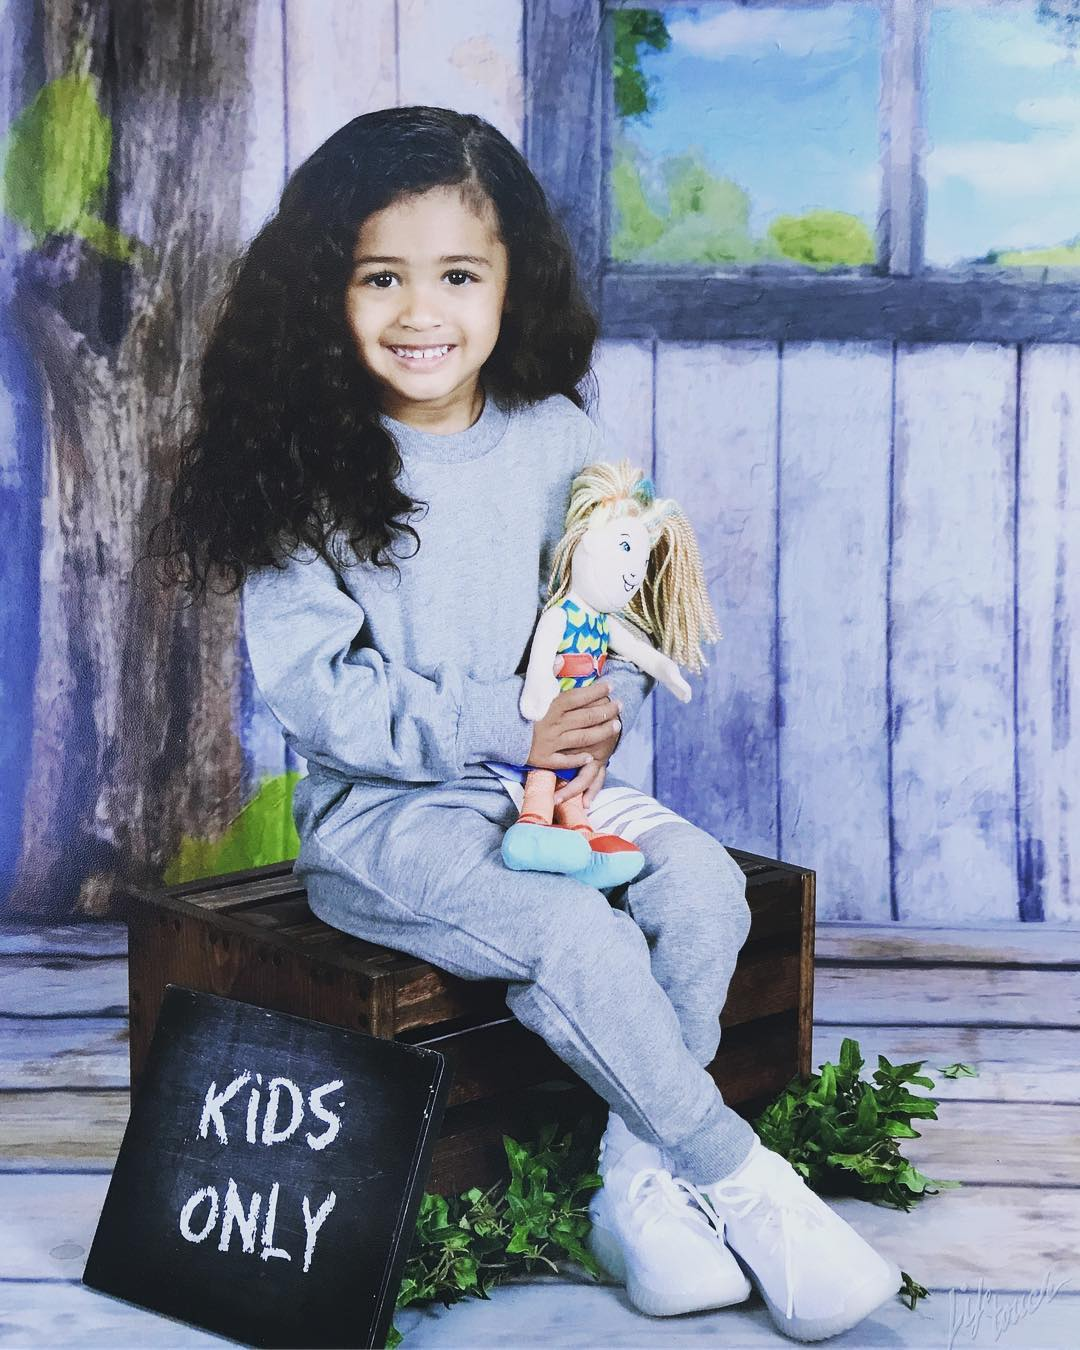 Chris Brown celebrates His Daughter Royalty as She turns 3 ...